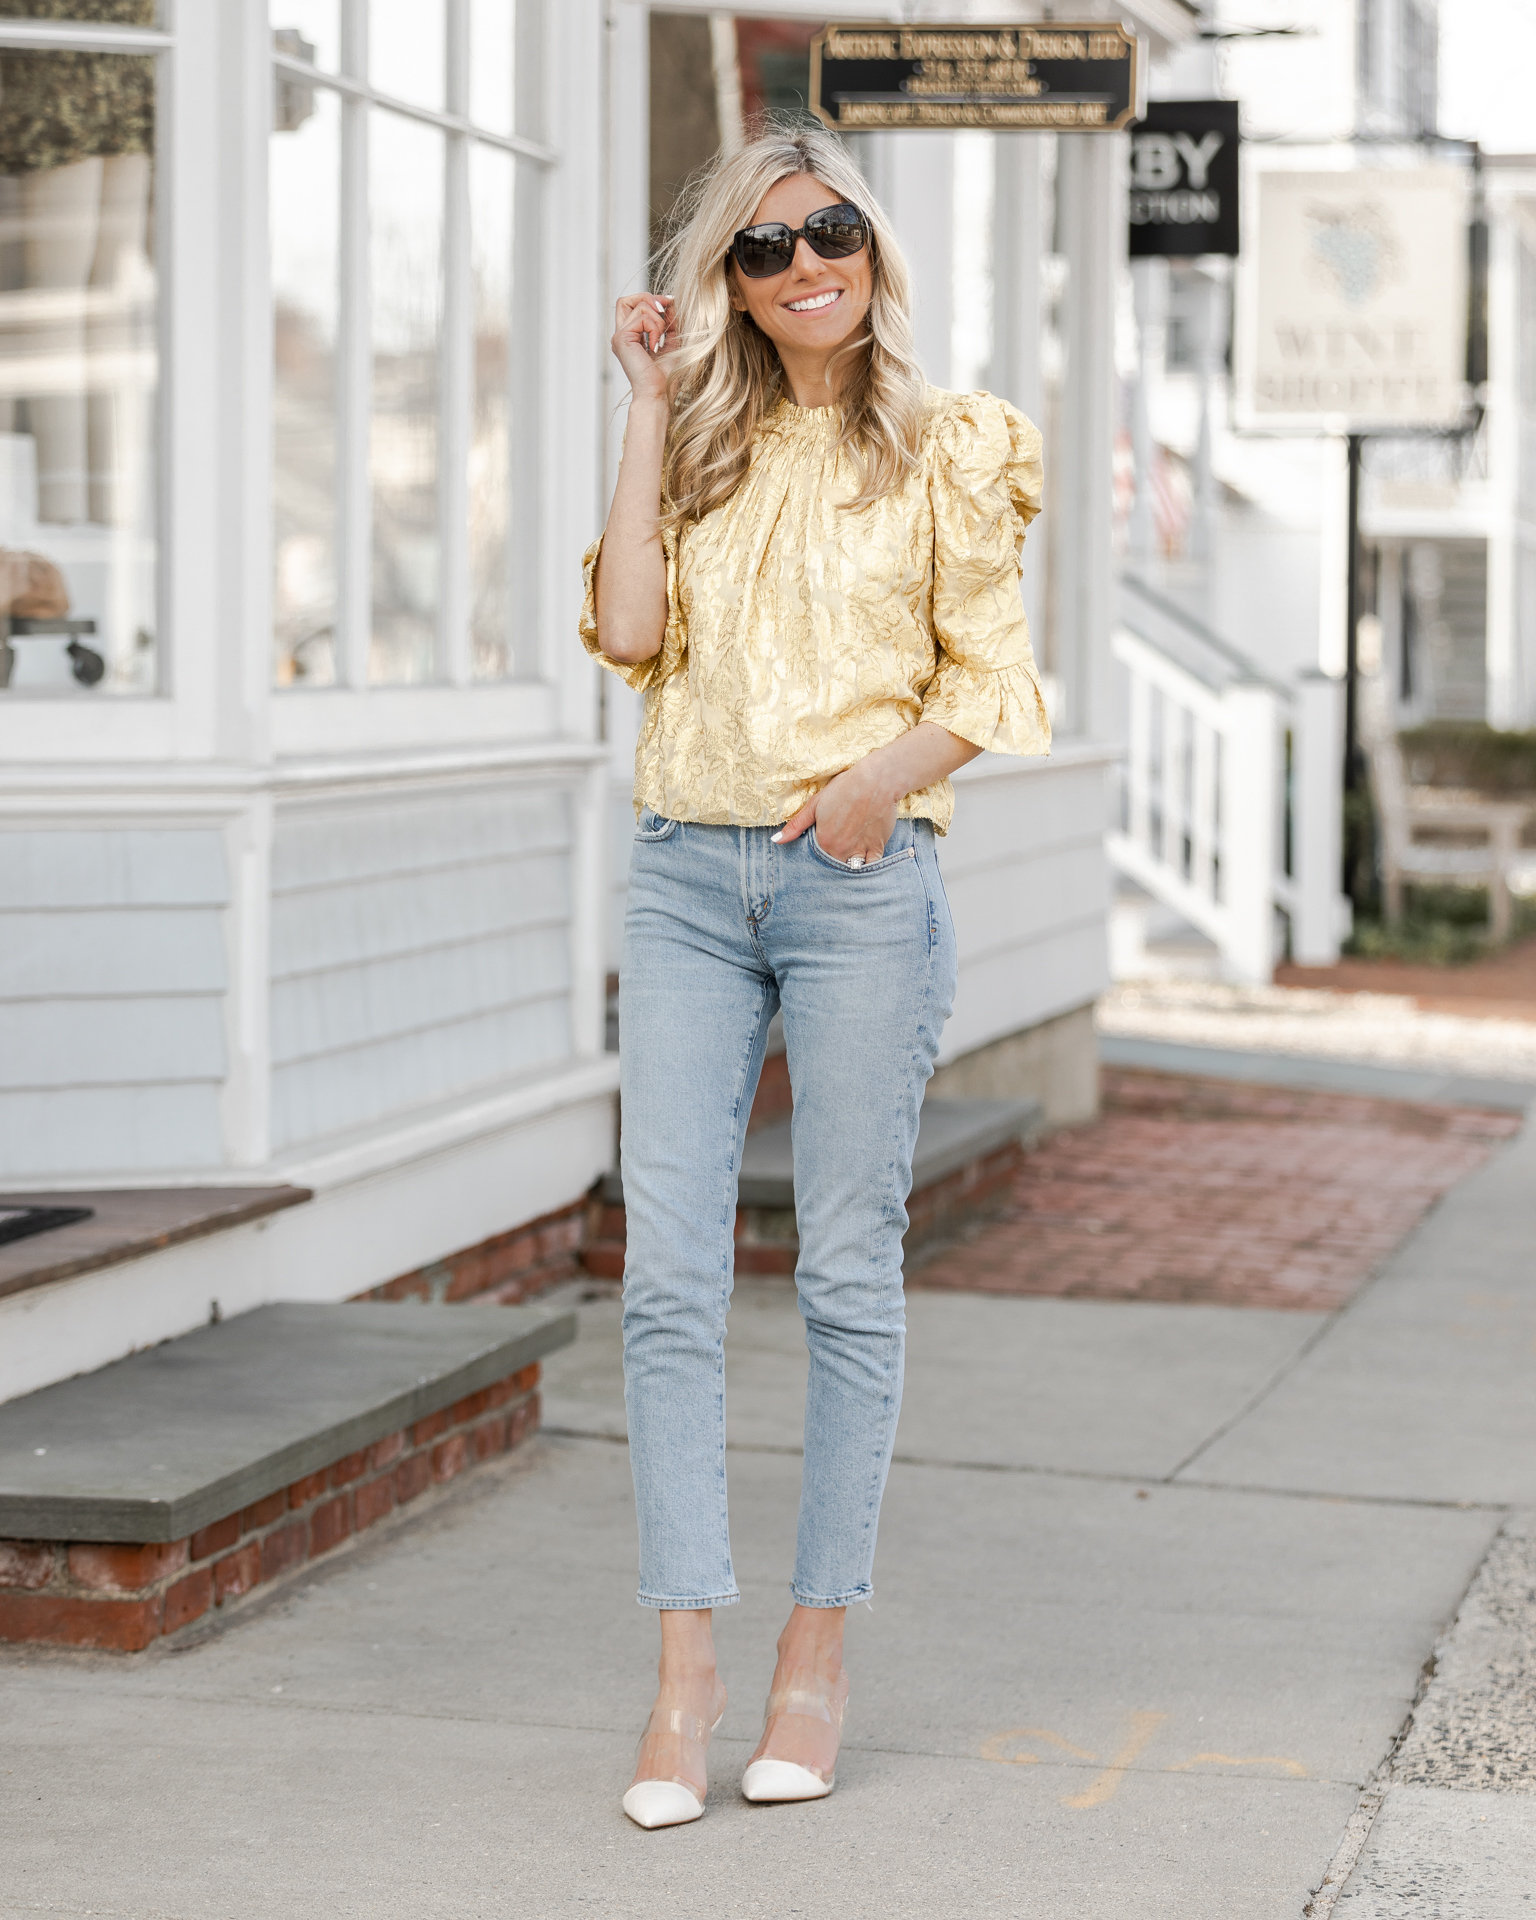 chic-and-feminine-top-from-saylor-the-glamorous-gal